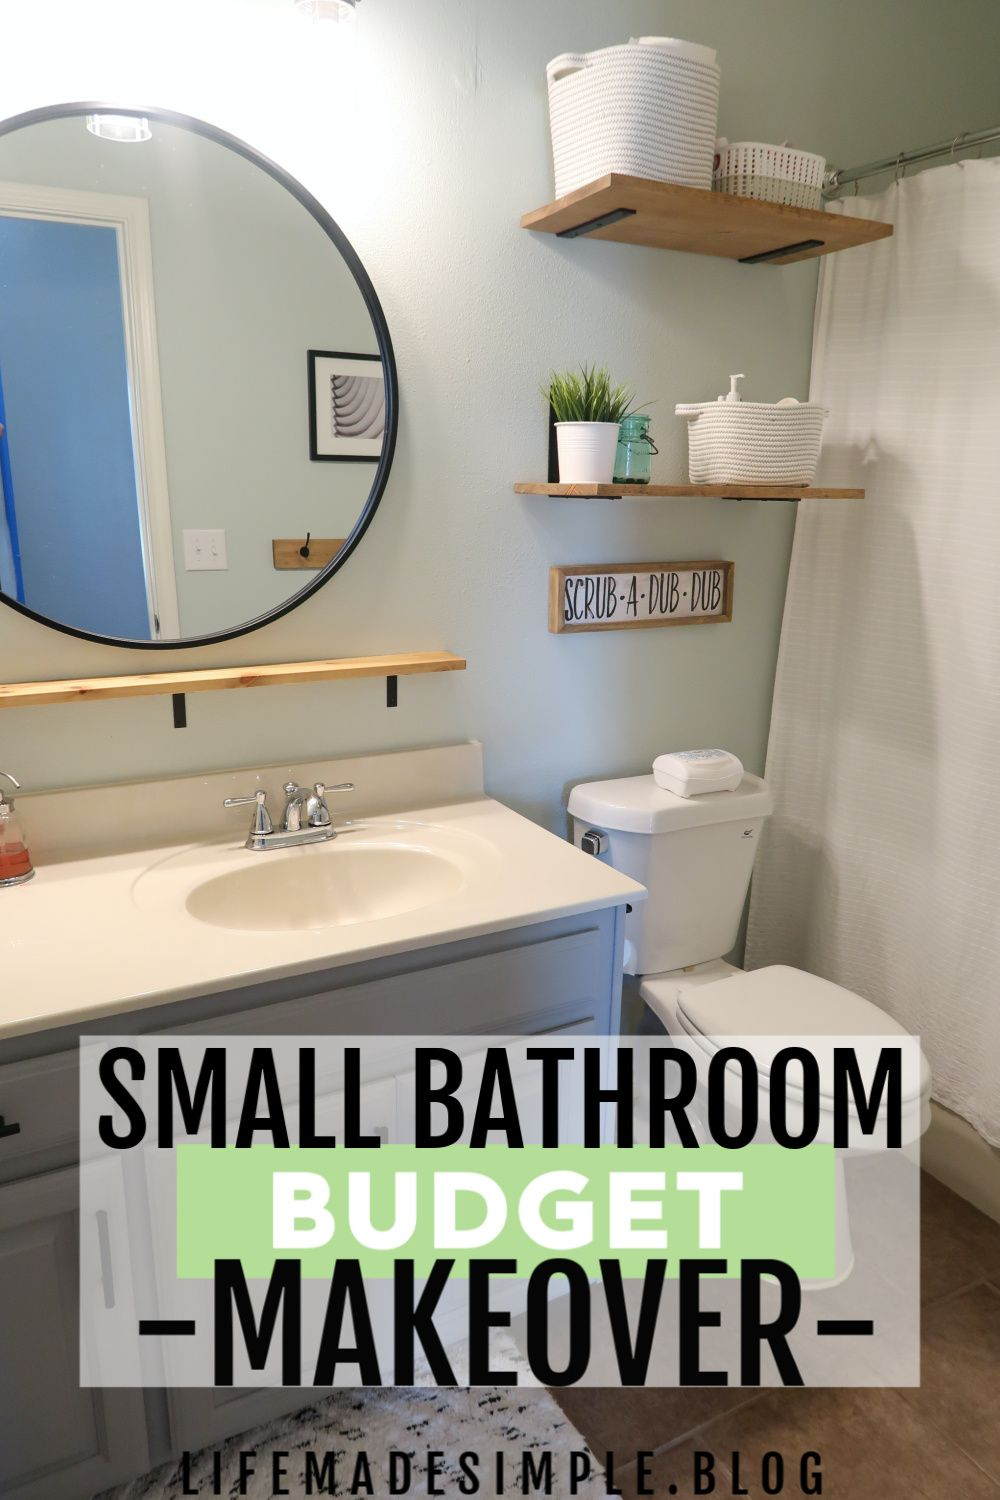 Modern Farmhouse bathroom remodel on a budget. Need bathroom makeover ideas? In this post I show you how I DIYed our spare bathroom remodel for less. Bathroom renovations on a budget | Bathroom remodel on a budget ideas | Low budget bathroom remodel | Bathroom makeover